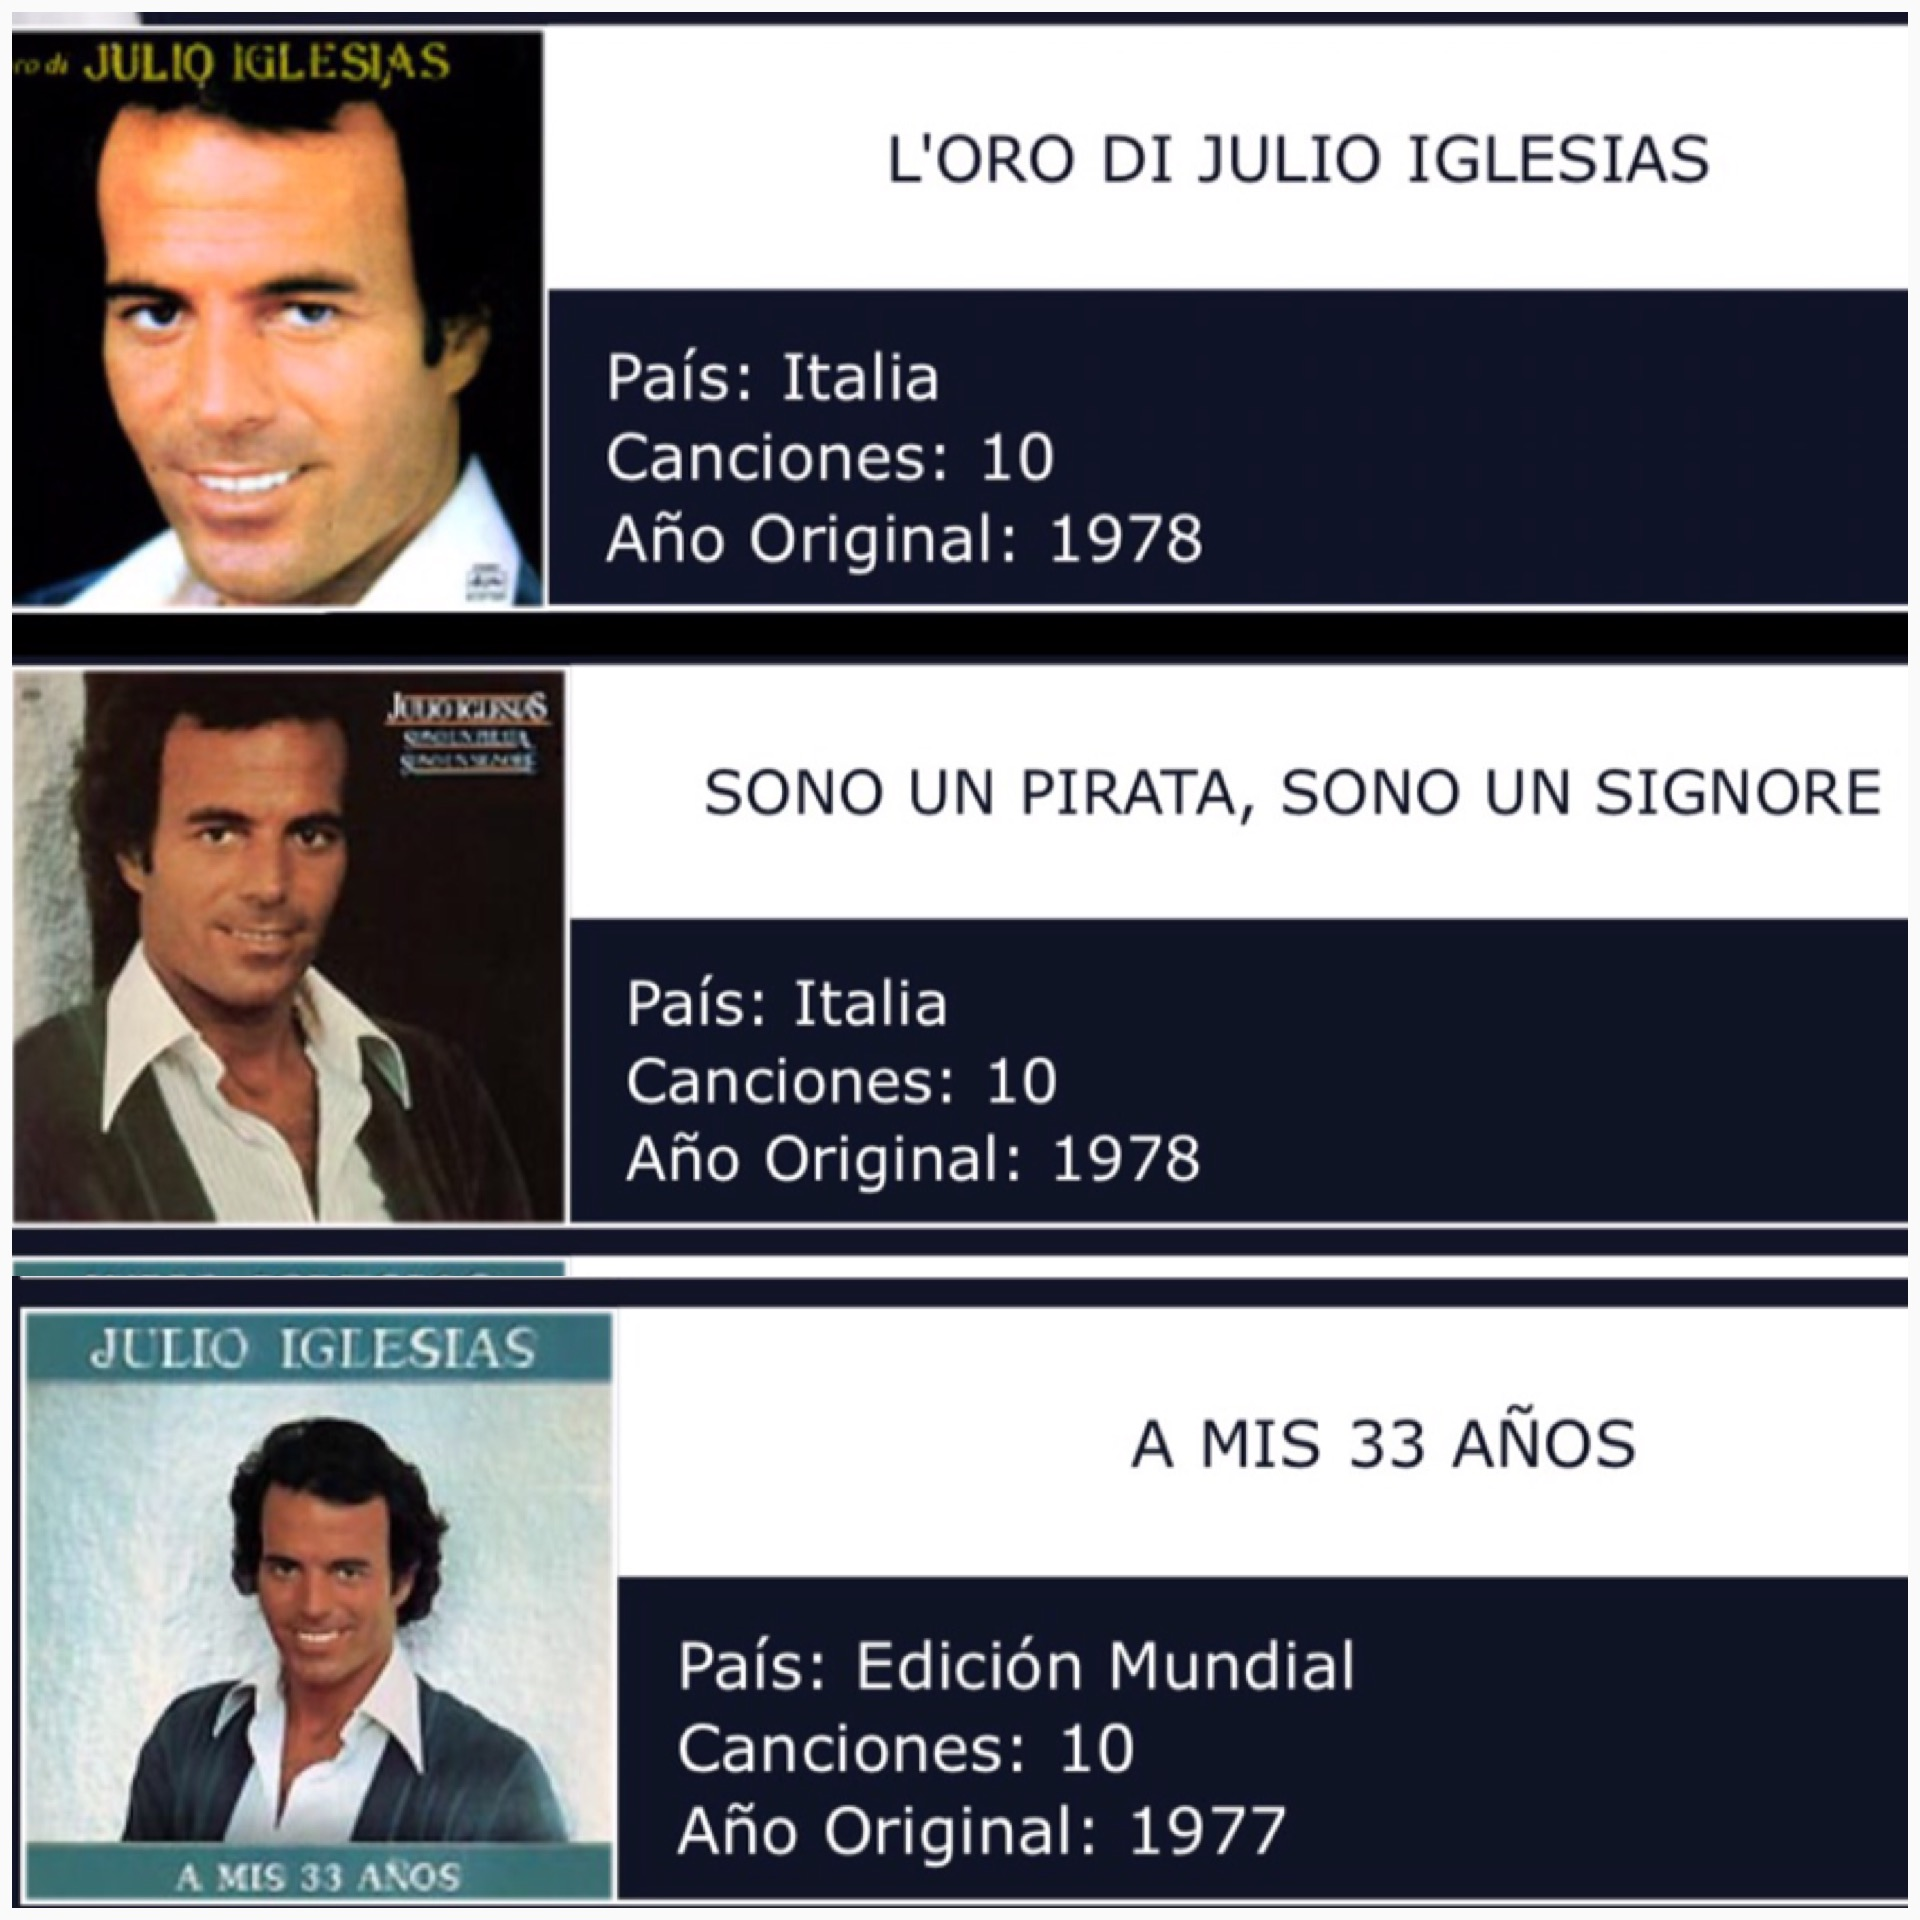 a biography of julio iglesias Julio iglesias, september 23, 1943, julio iglesias is a spanish singer who is the most commercially successful european singer commercially in the world.